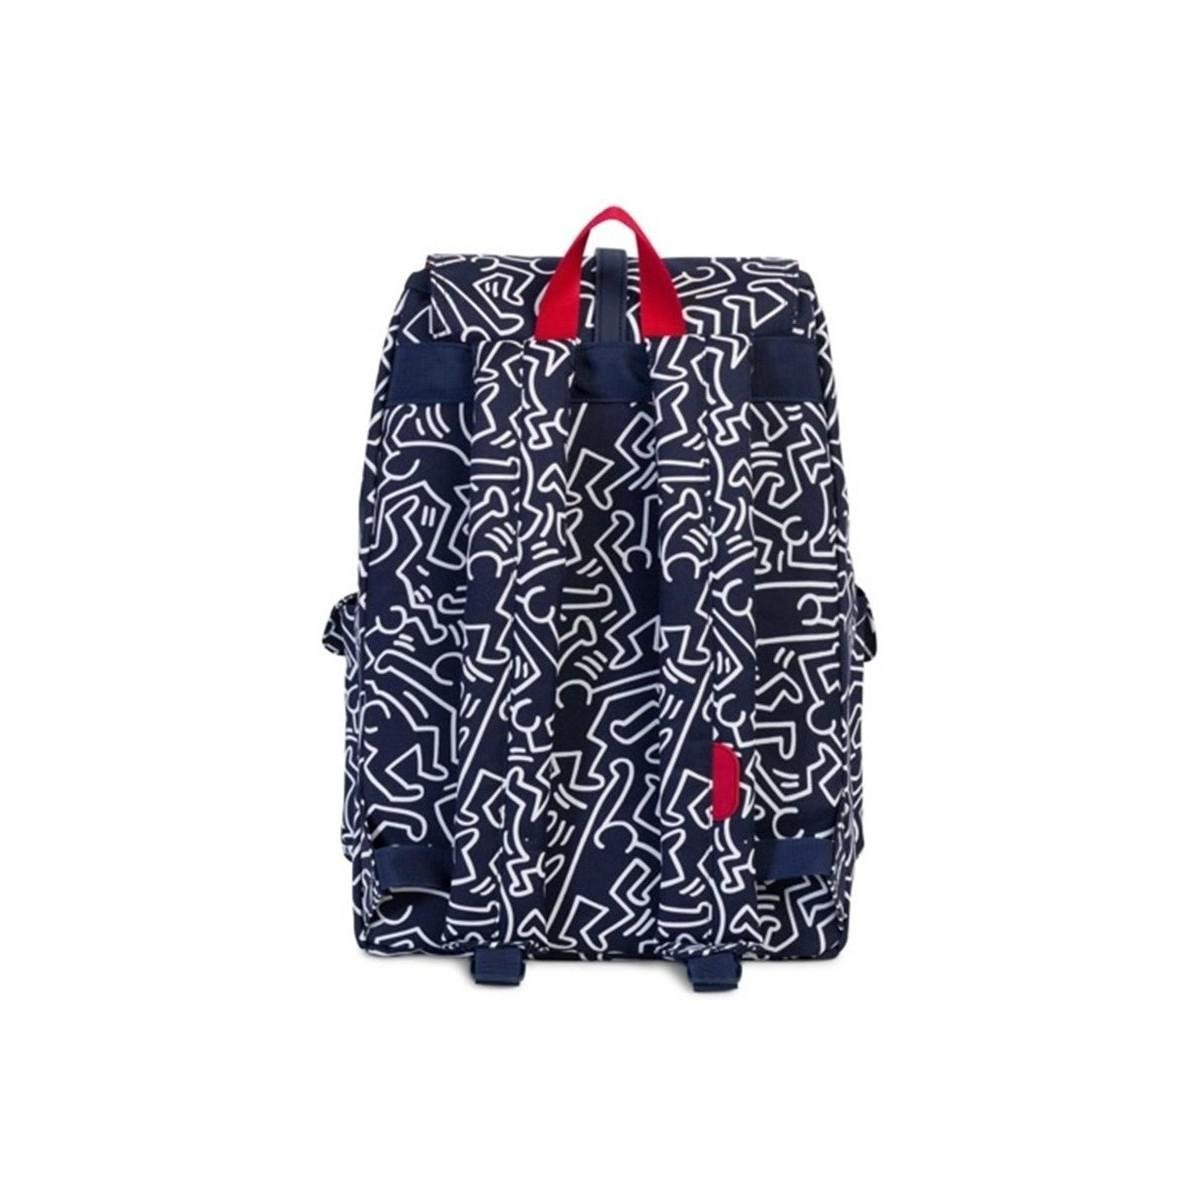 Herschel Supply Co. Dawson Backpack Peacoat Keith Haring Women's Backpack In White